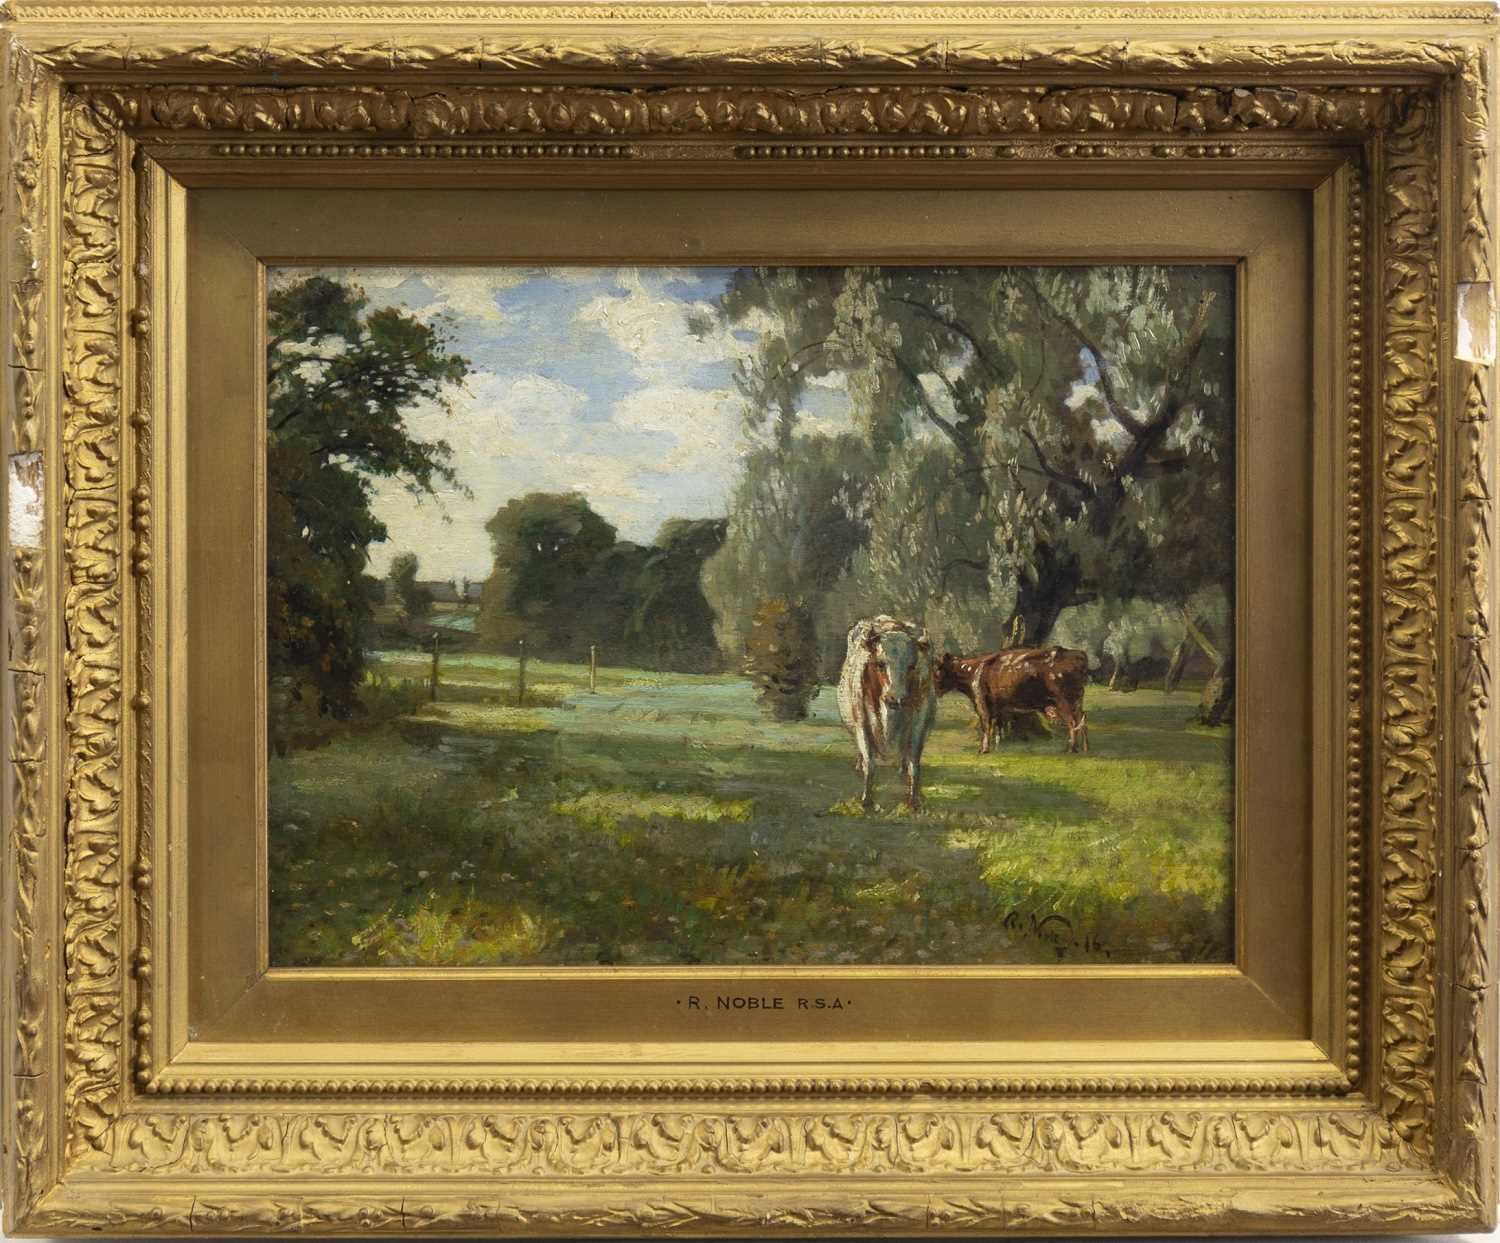 Lot 410-CATTLE GRAZING IN A FOREST LANDSCAPE, AN OIL BY ROBERT NOBLE